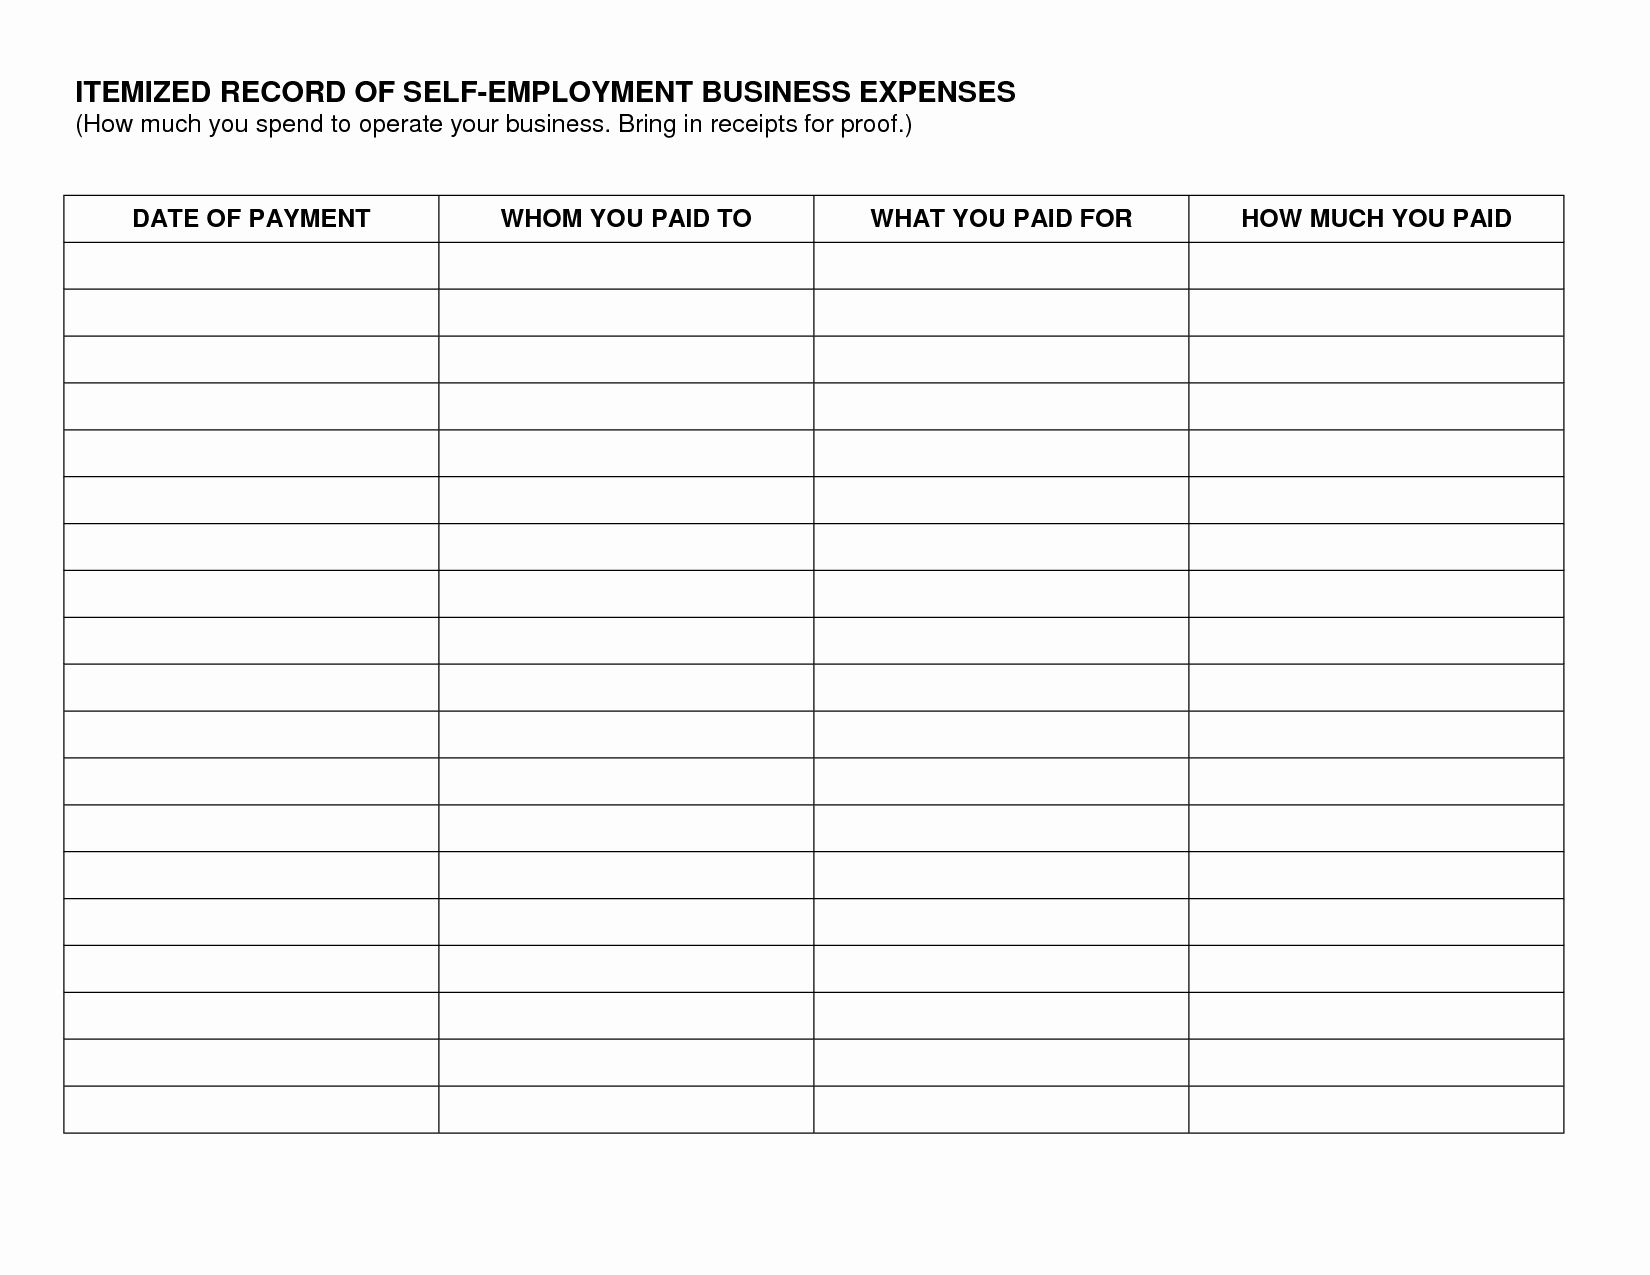 Equipment Sign Out Sheet Template Elegant Equipment Sign Out Sheet Template Virtual assistant